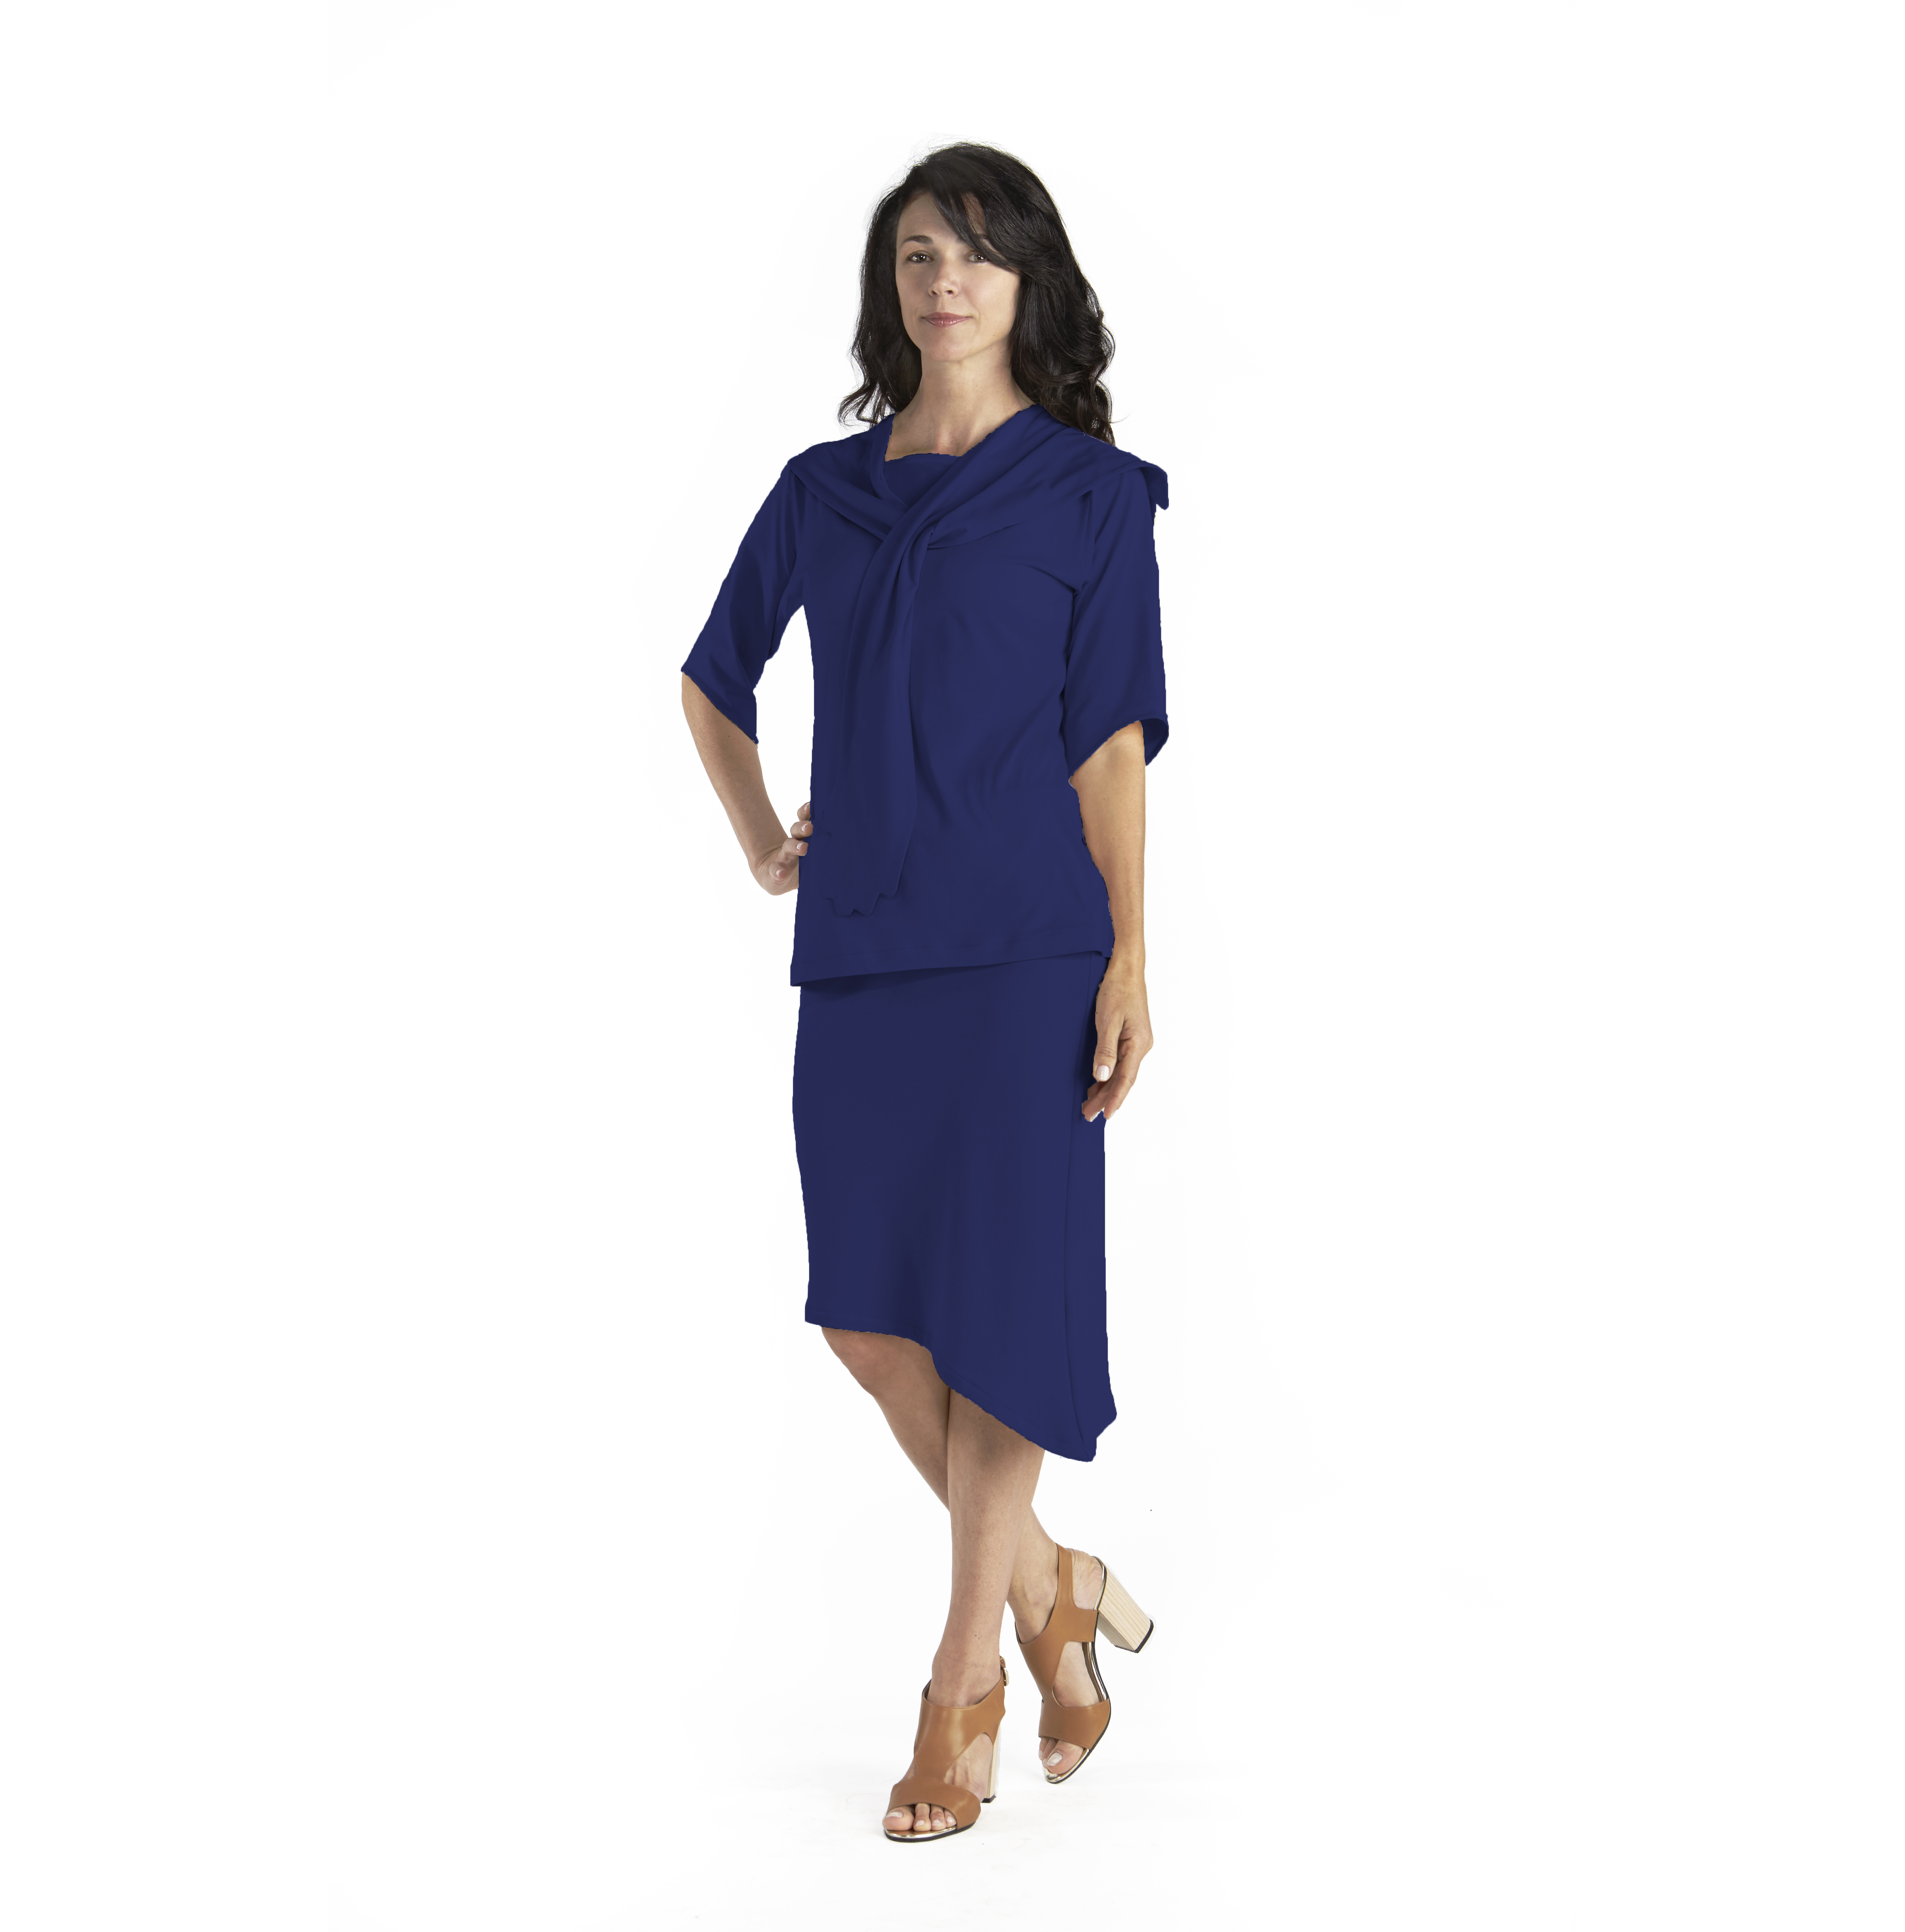 Hug Boat Neck Top in Pima Cotton from B.e Quality